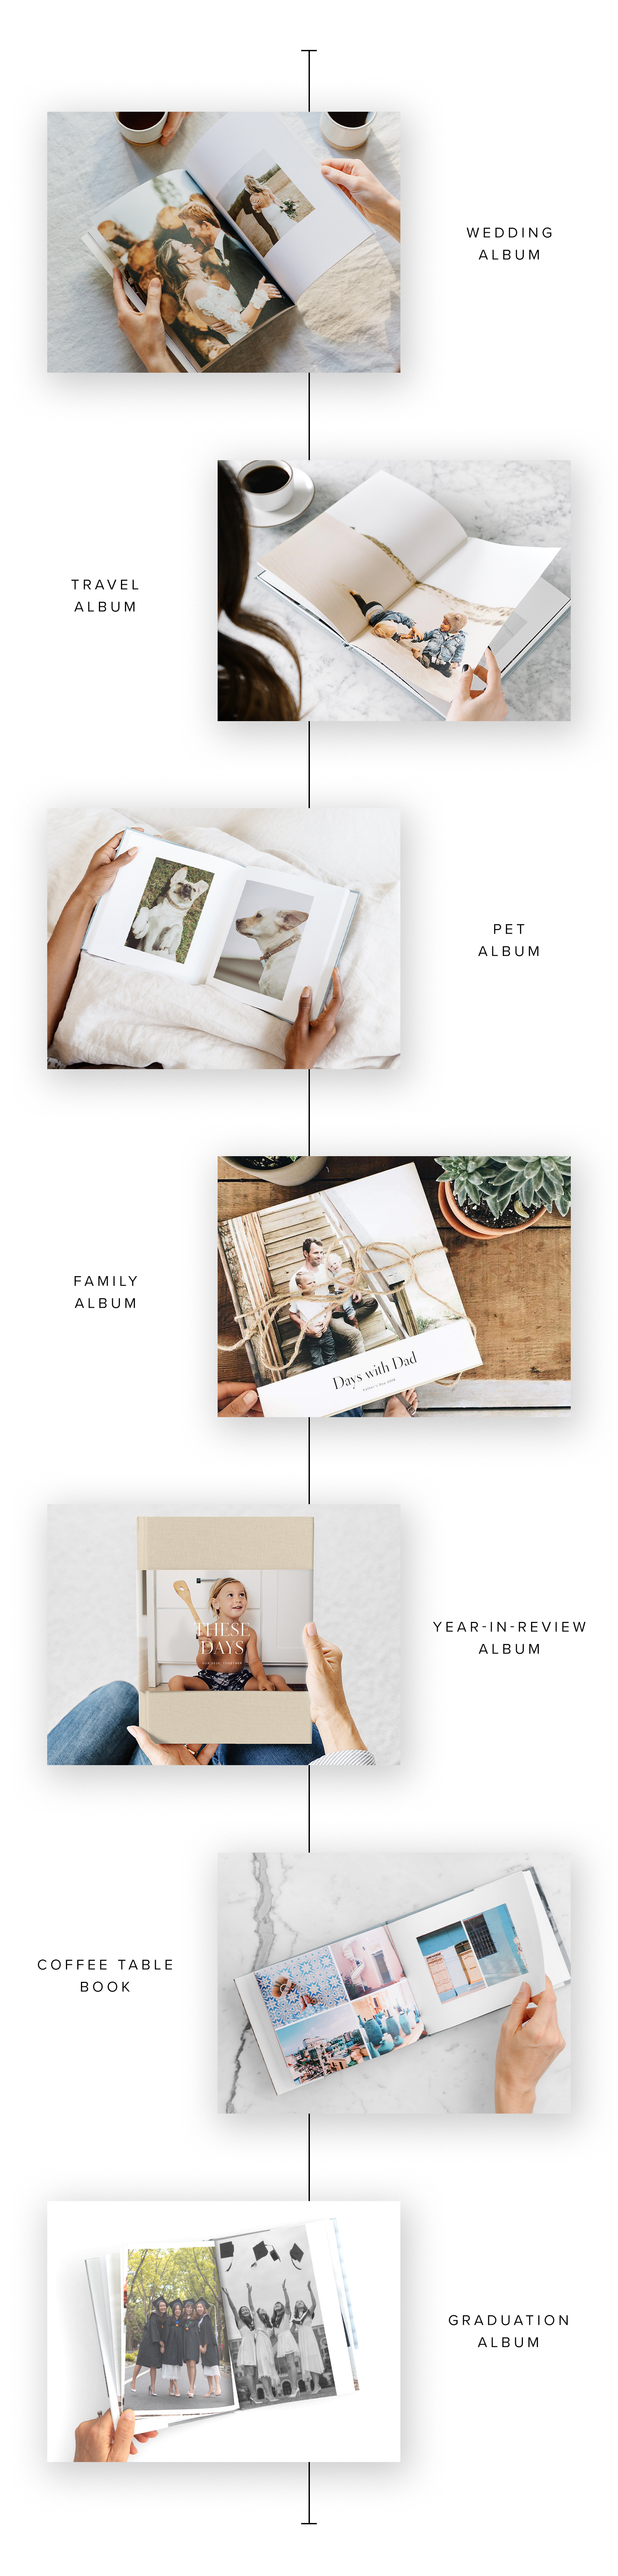 7 different Hardcover Photo Books being used for different purposes ranging from travel to wedding photos